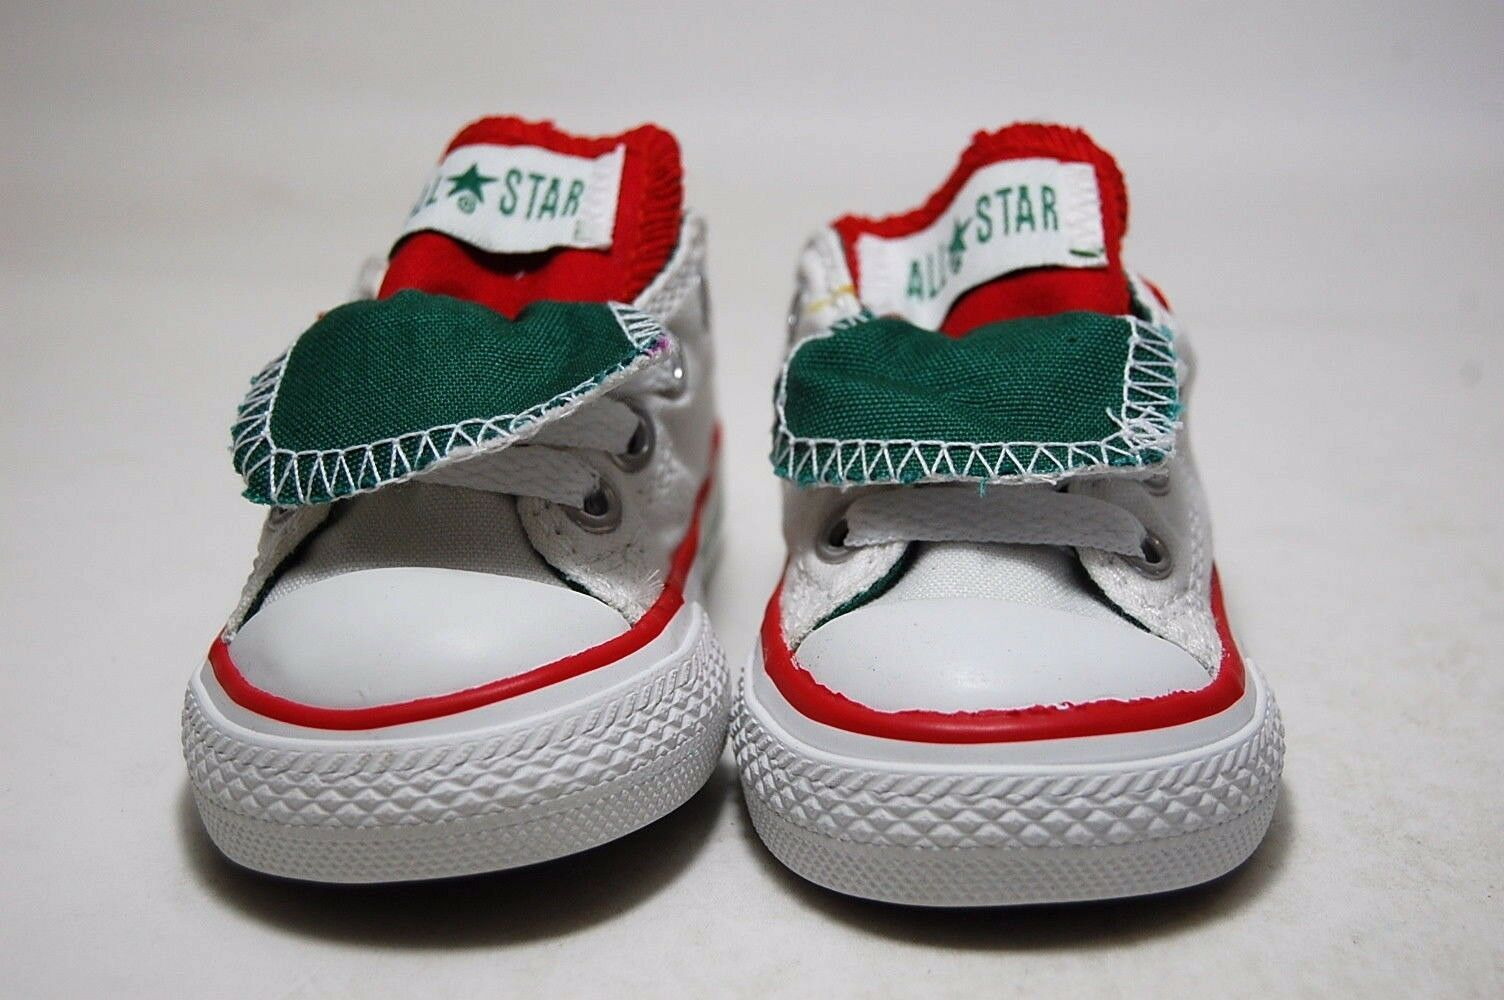 Converse All Star Chuck HI Double Thong 705655 Baby Toddler Shoes image 4